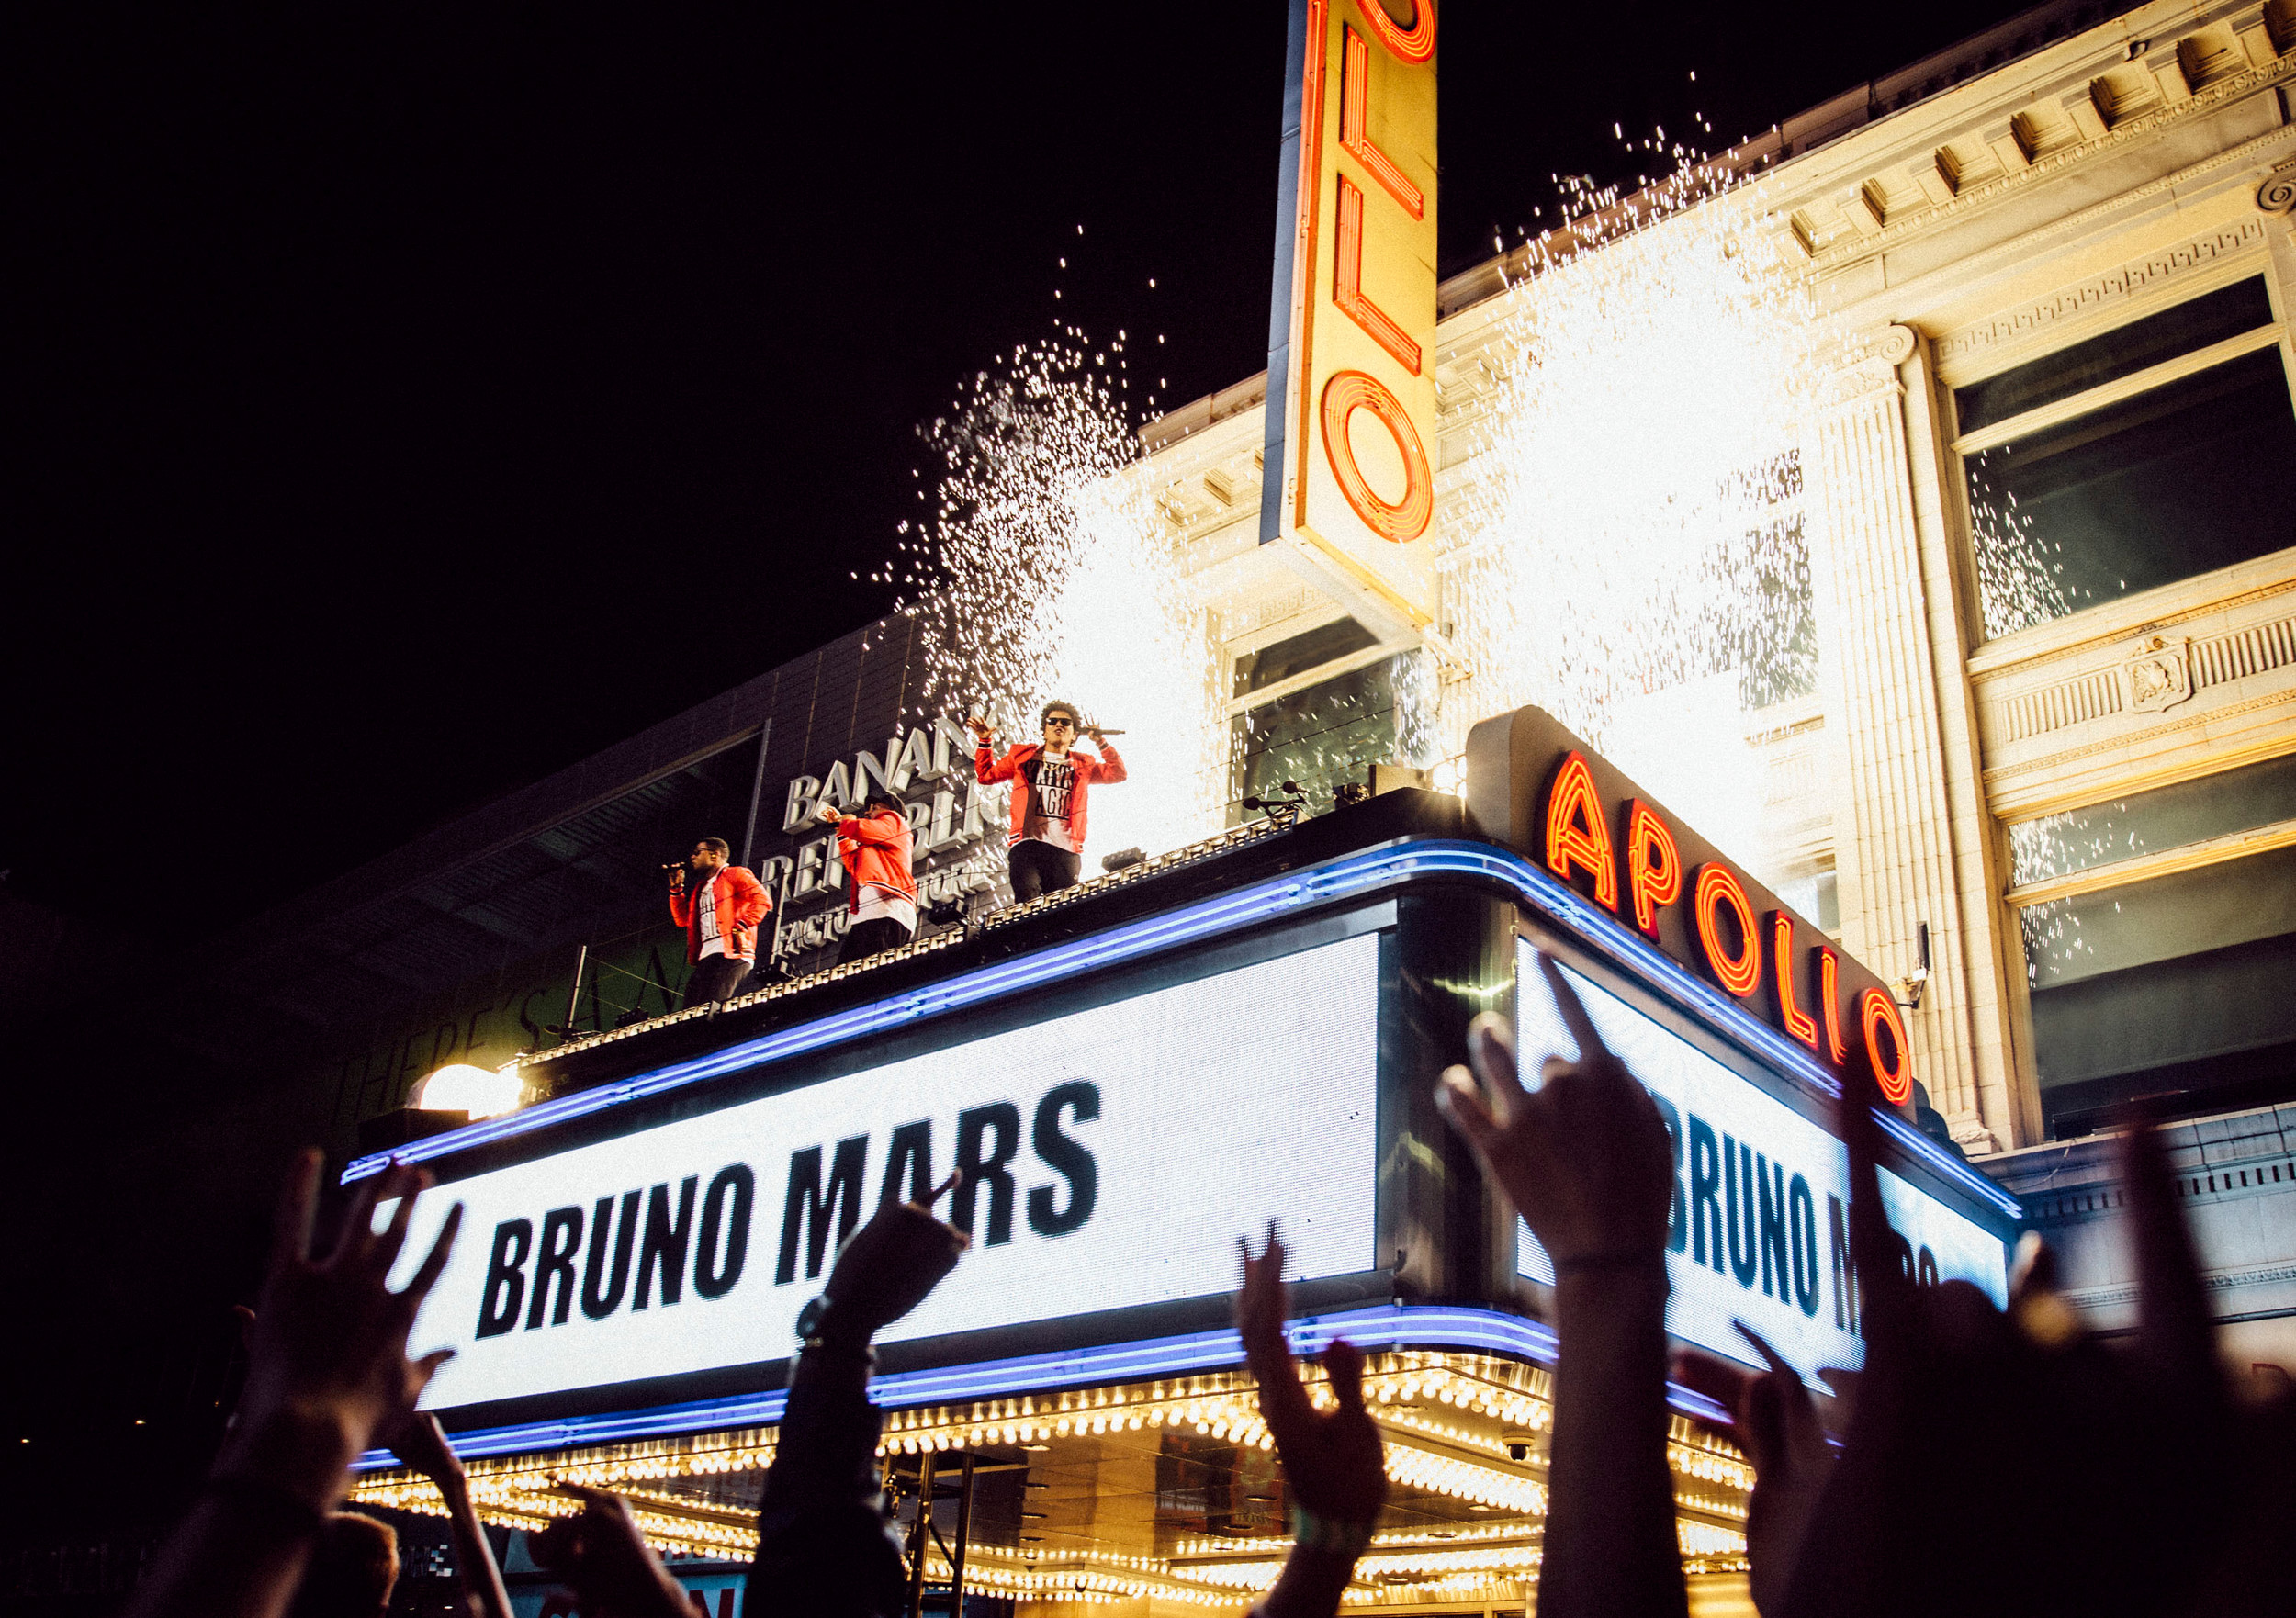 Bruno Mars performs atop the Apollo Theater marquee in New York City.